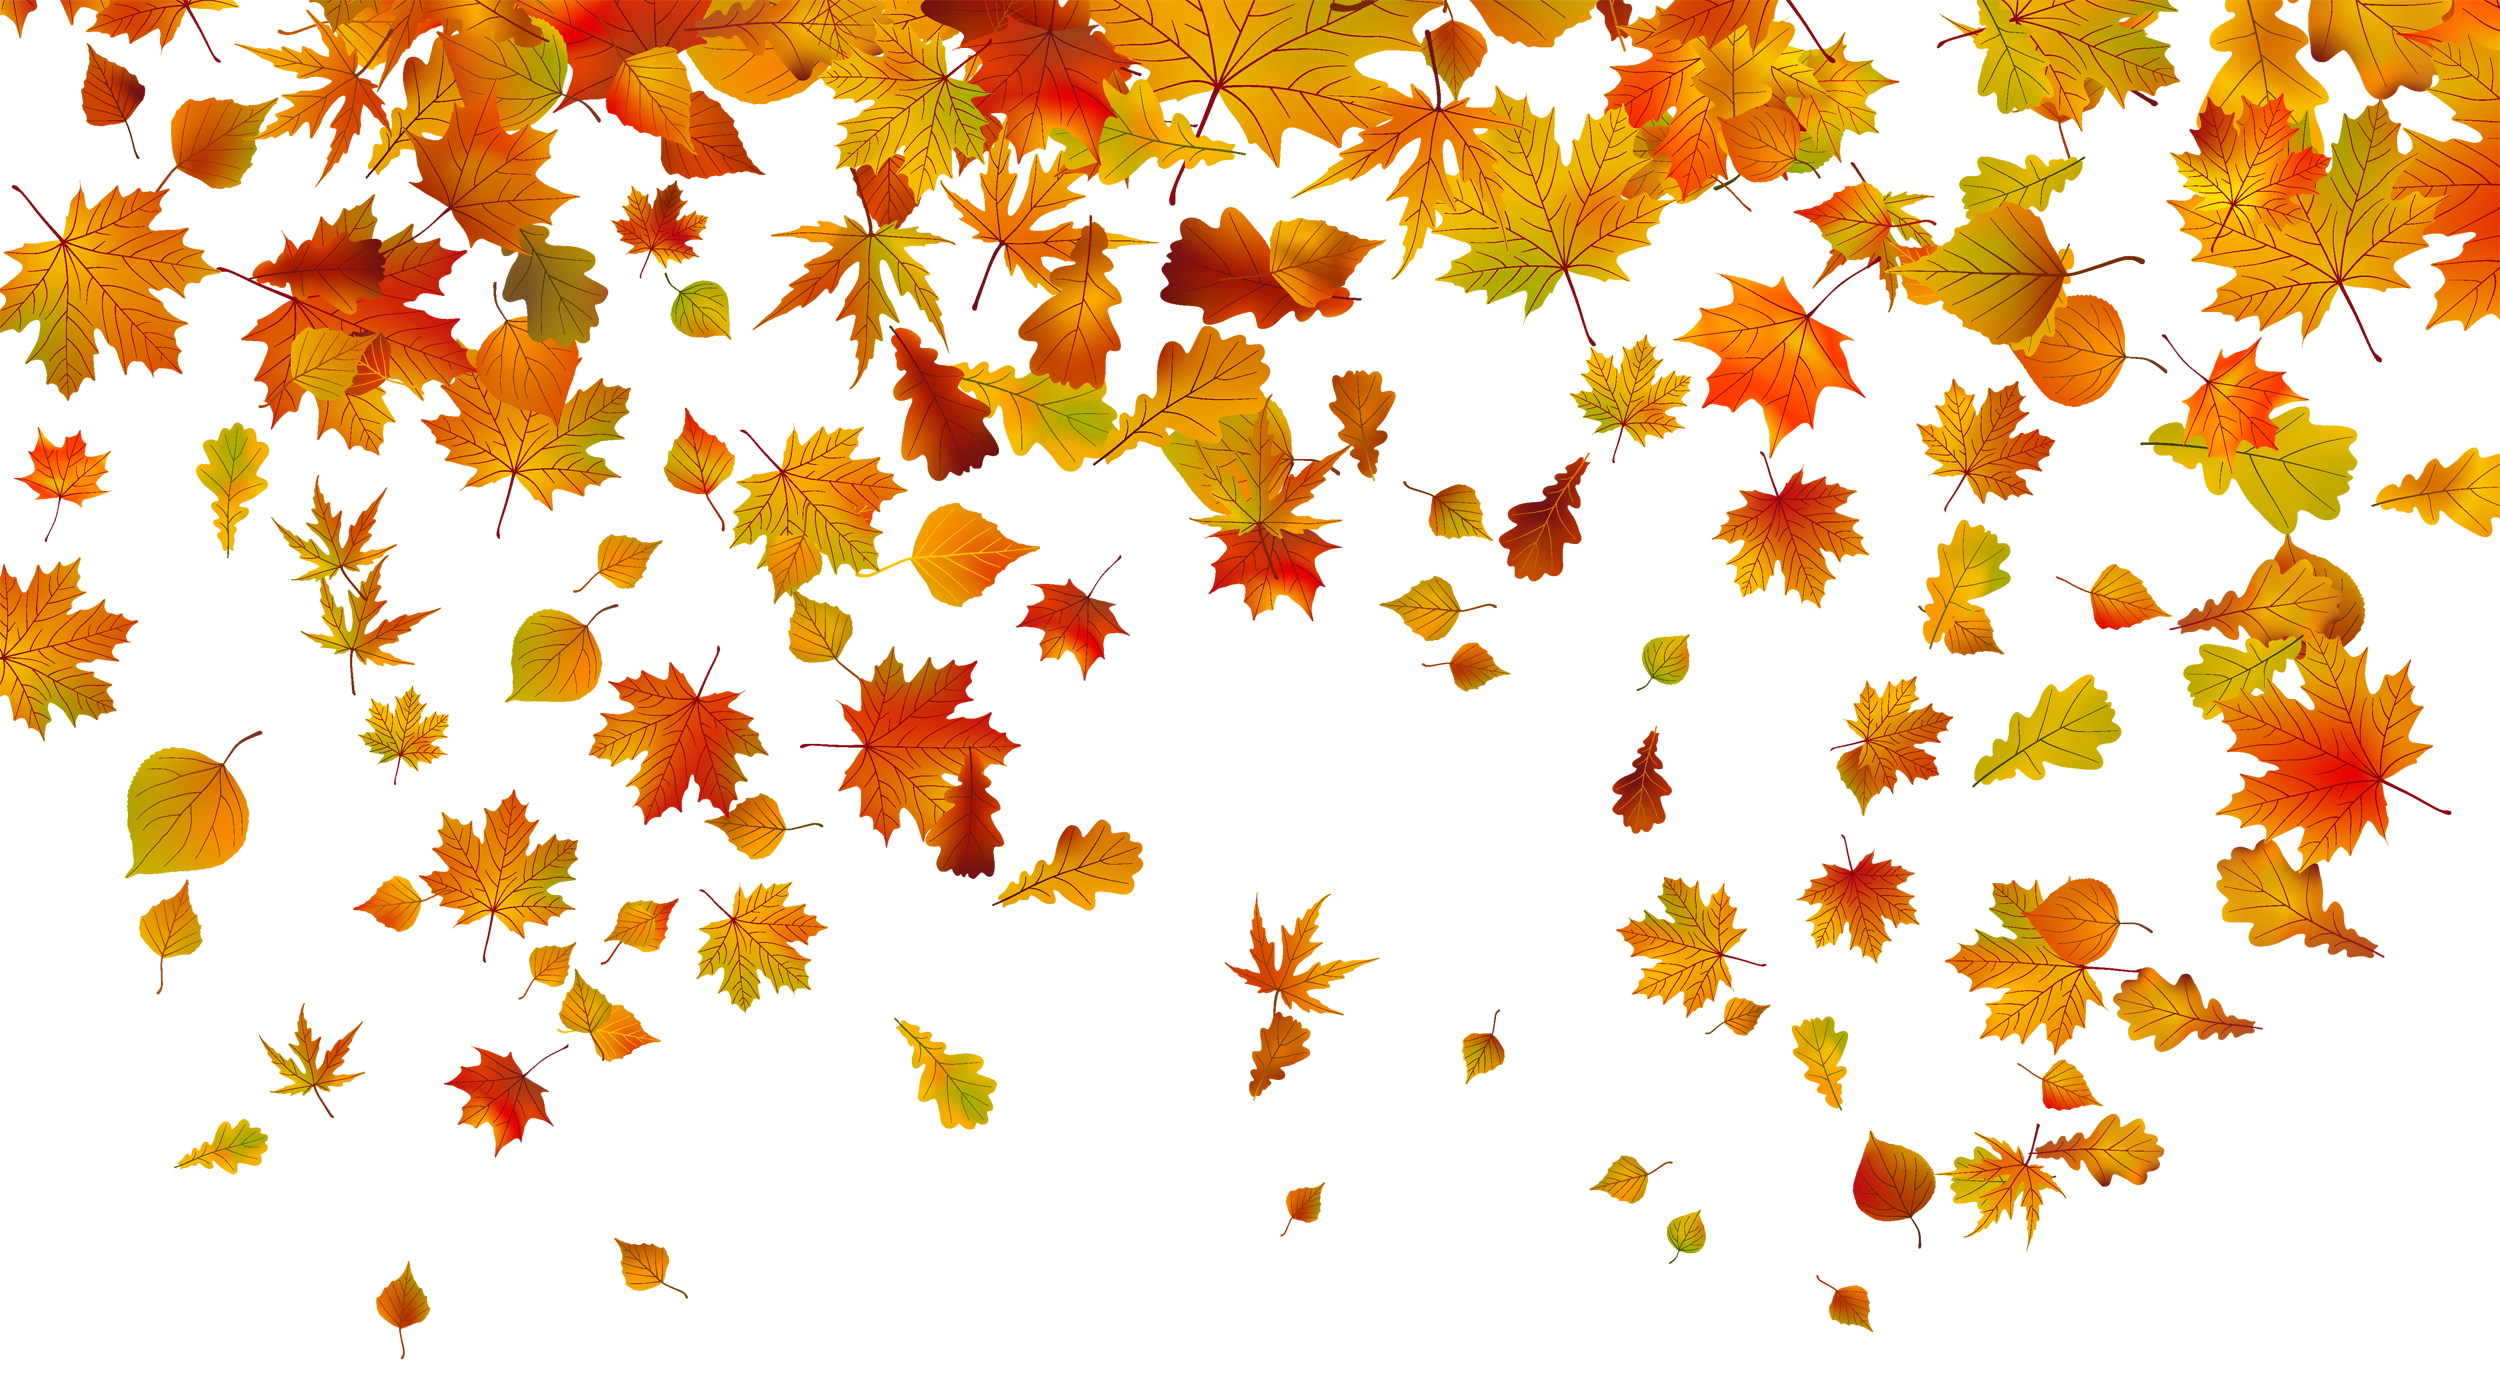 Fall leaves clip art png. Transparent clipart image gallery